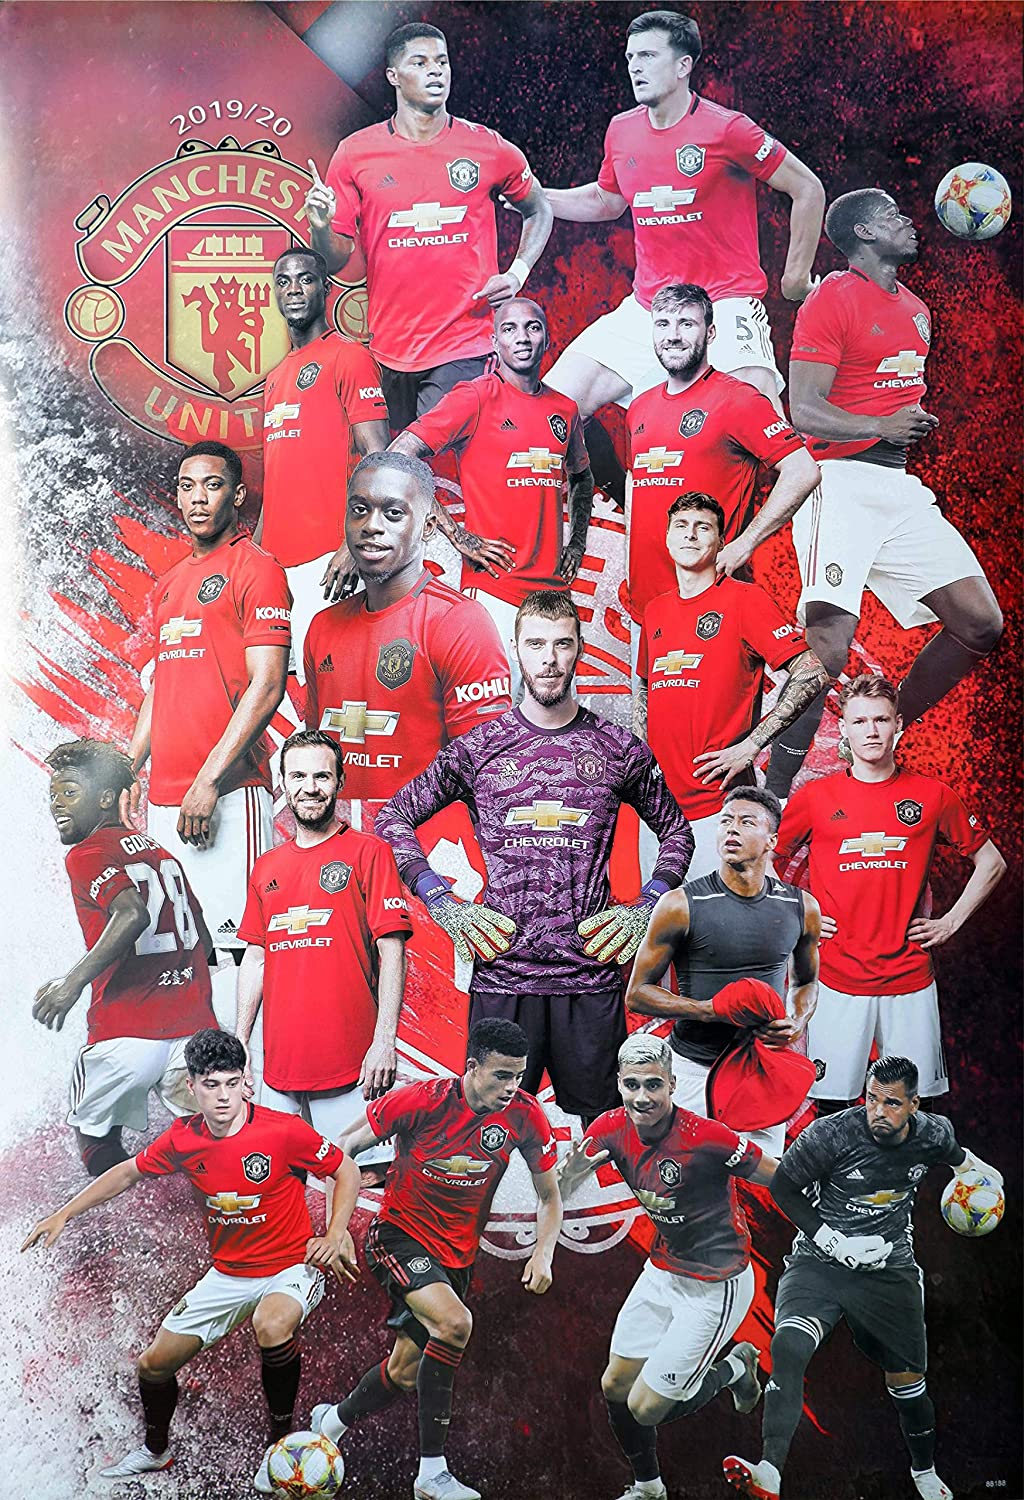 manchester united players 2020 wallpapers wallpaper cave manchester united players 2020